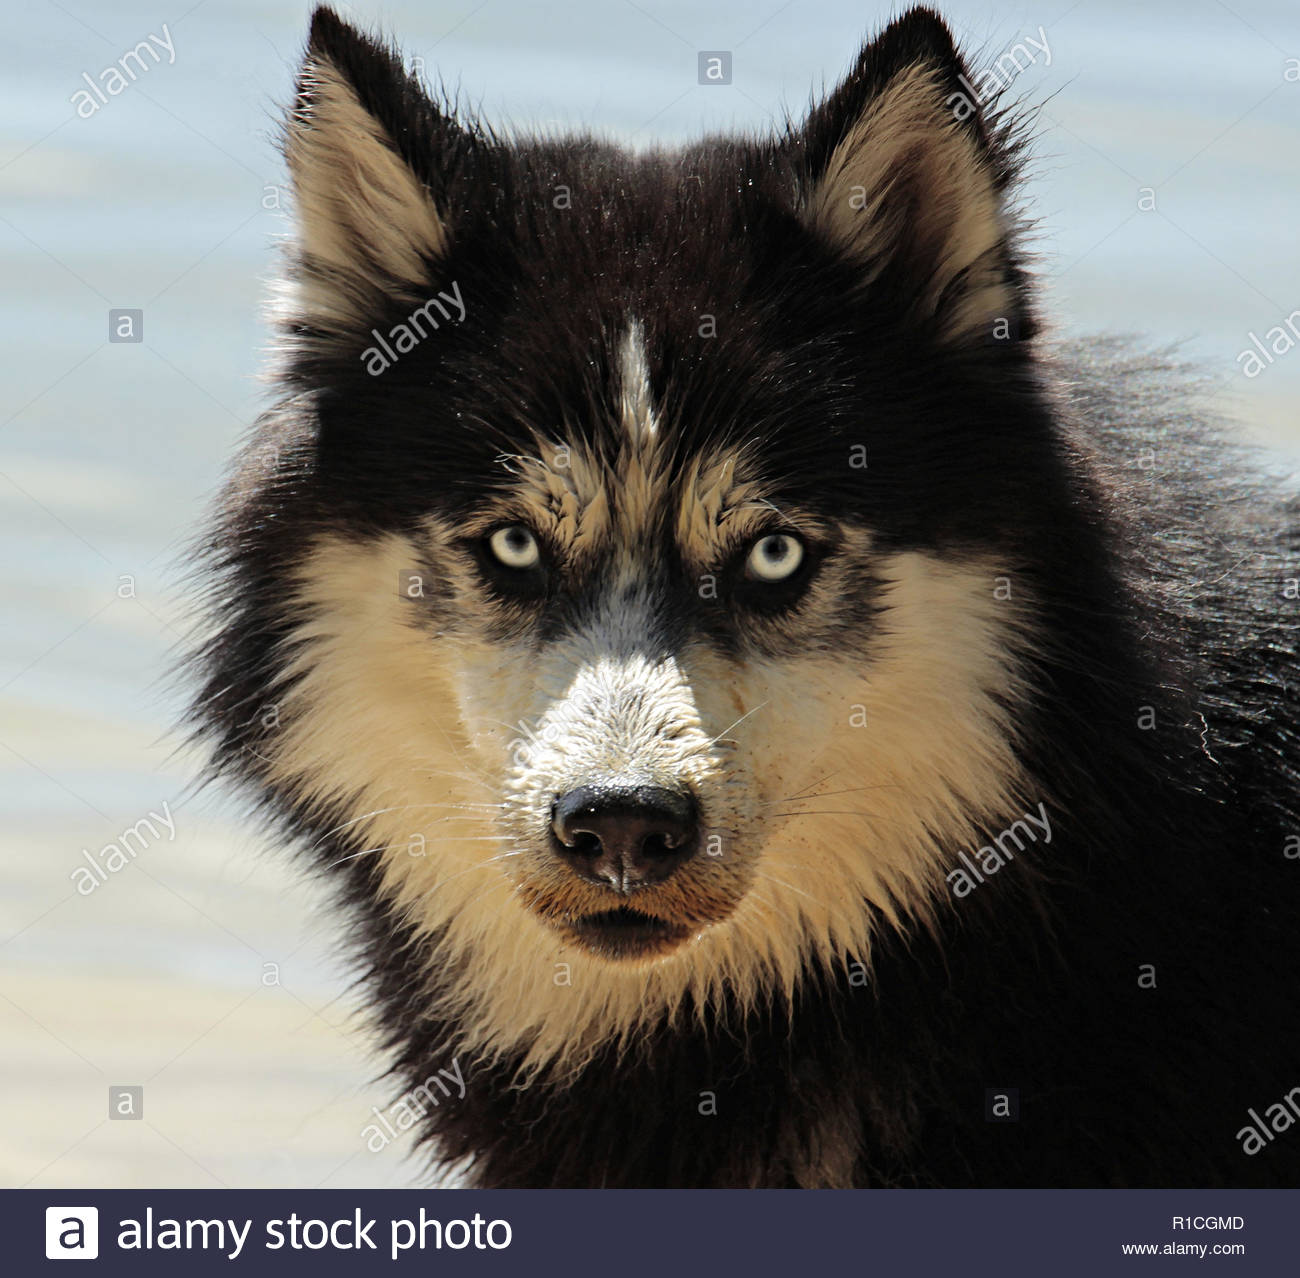 The Siberian Husky is a medium size working dog breed that originated in Northeast Asia. The breed belongs to the Spitz genetic family. With proper tr - Stock Image